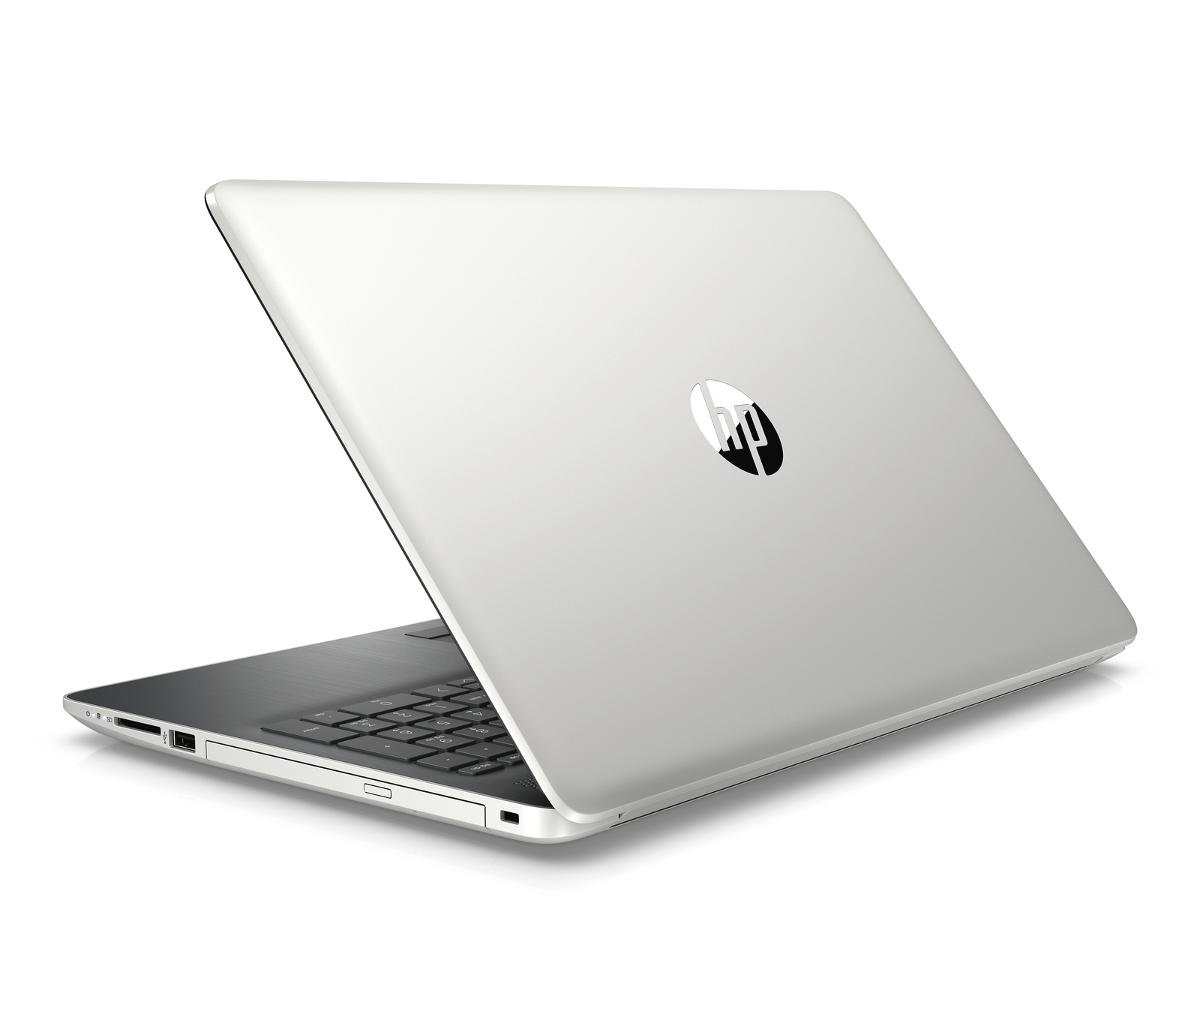 "Laptop HP 15-db0023nw 5GS57EA, Ryzen 3 2200, 8 GB RAM, 15.6"", 256 GB, Windows 10 Home"